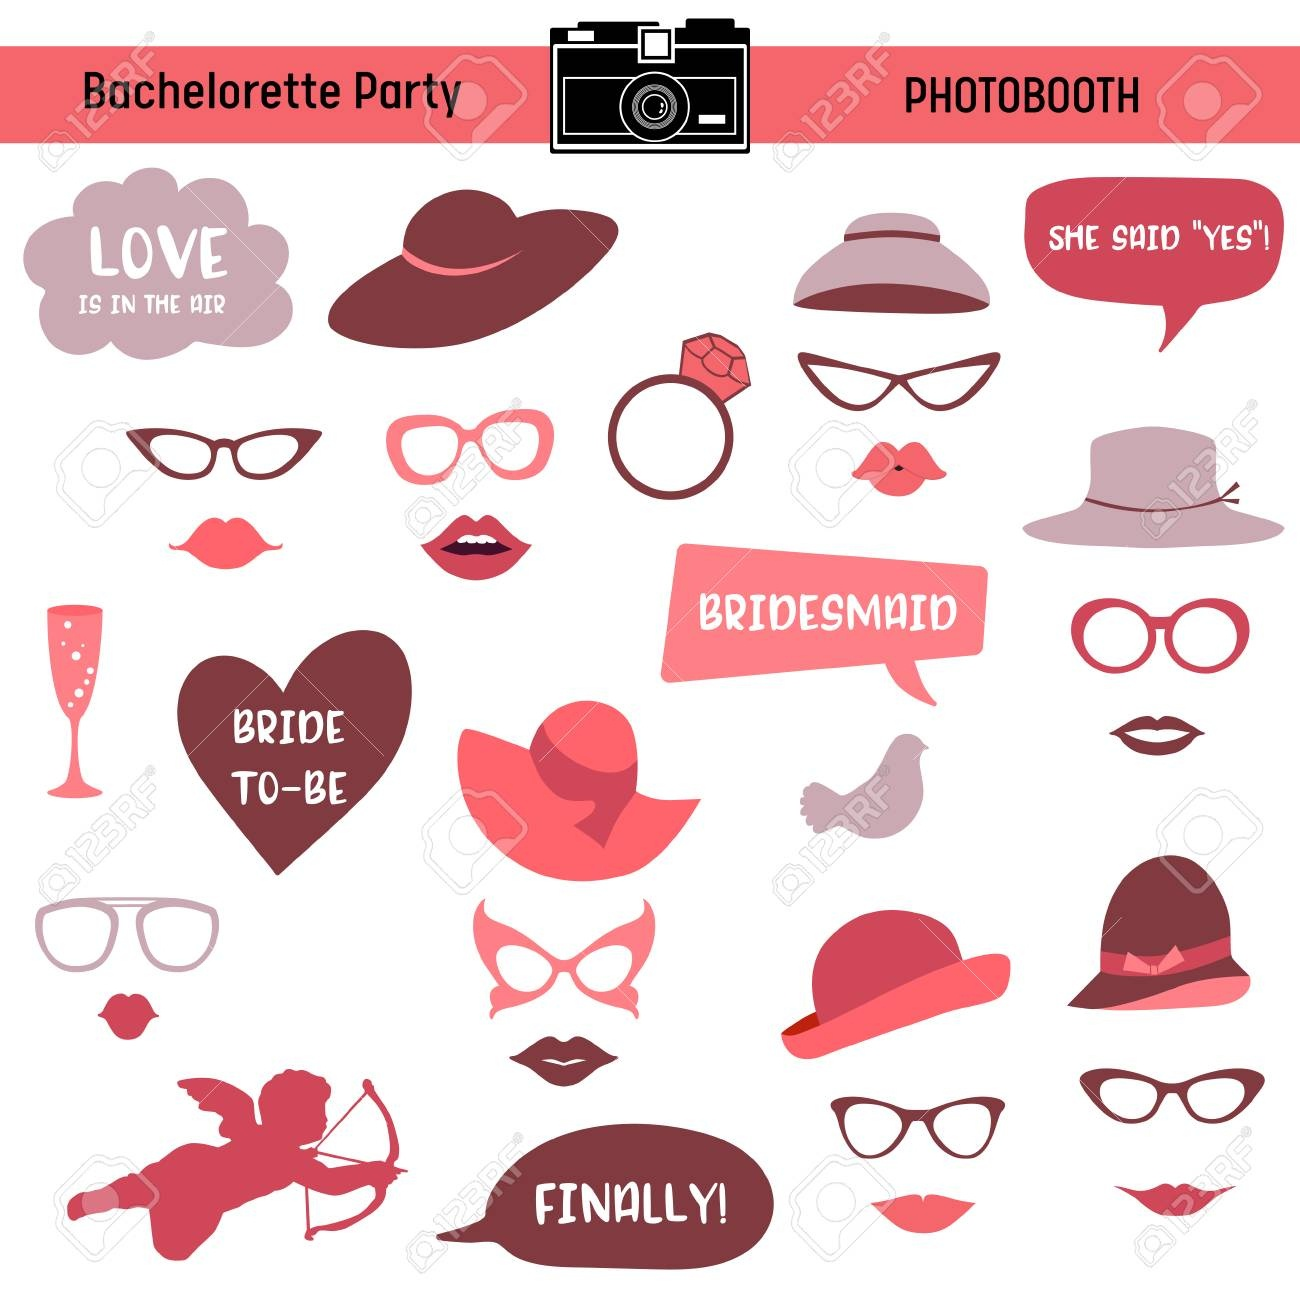 Bachelorette Event, Hen Party, Bridal Shower Printable Glasses - Free Printable Photo Booth Props Bridal Shower